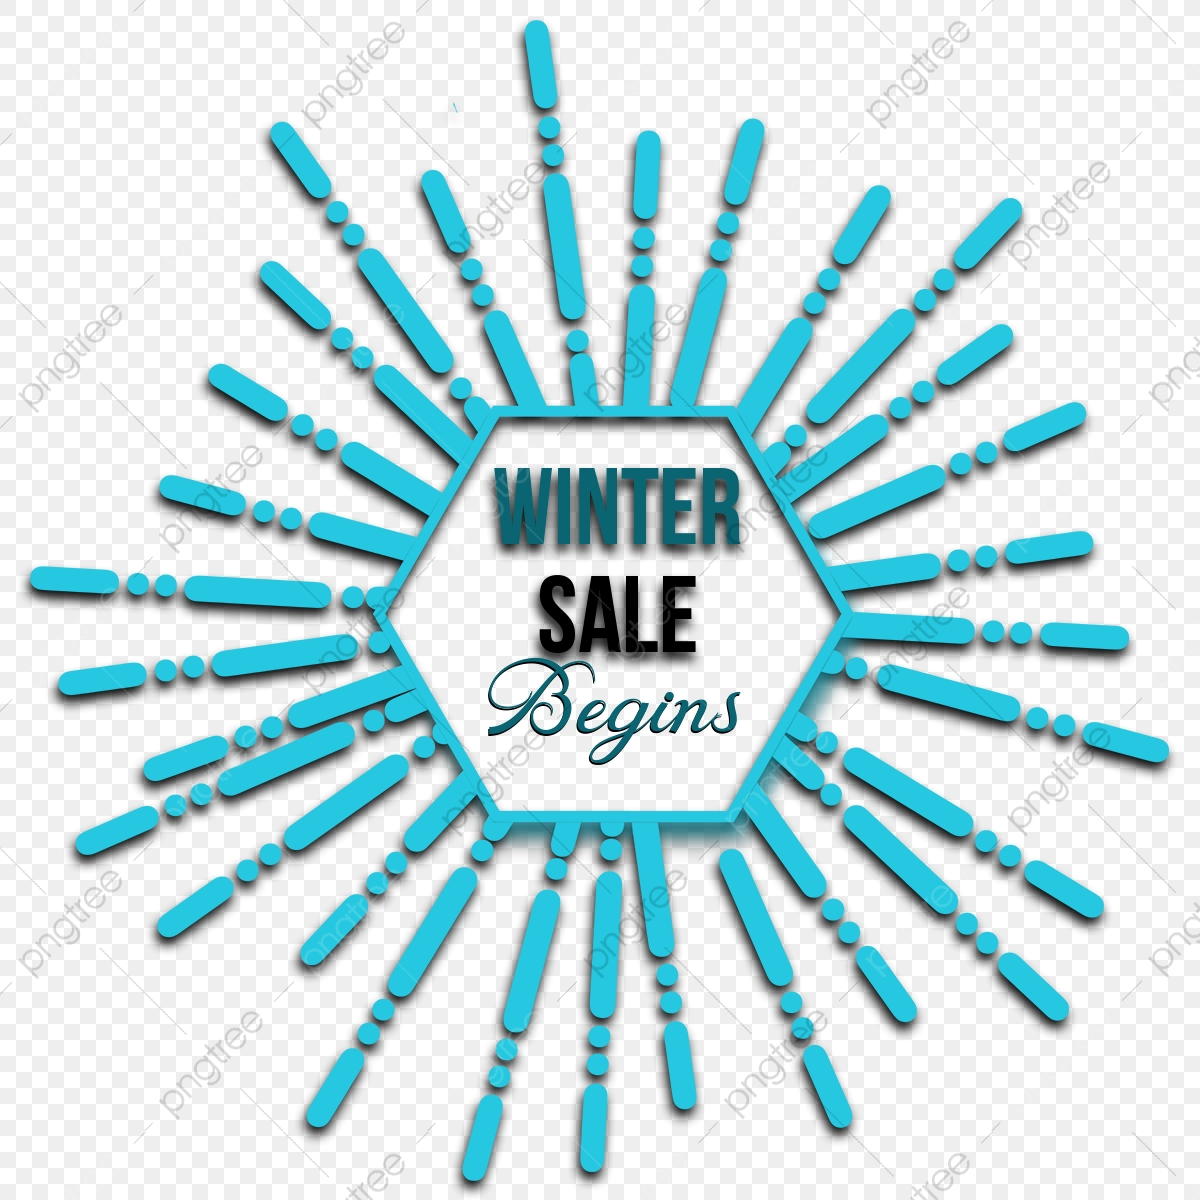 Winter Sale Begins, Winter, Winter Sale, Holiday PNG Transparent.